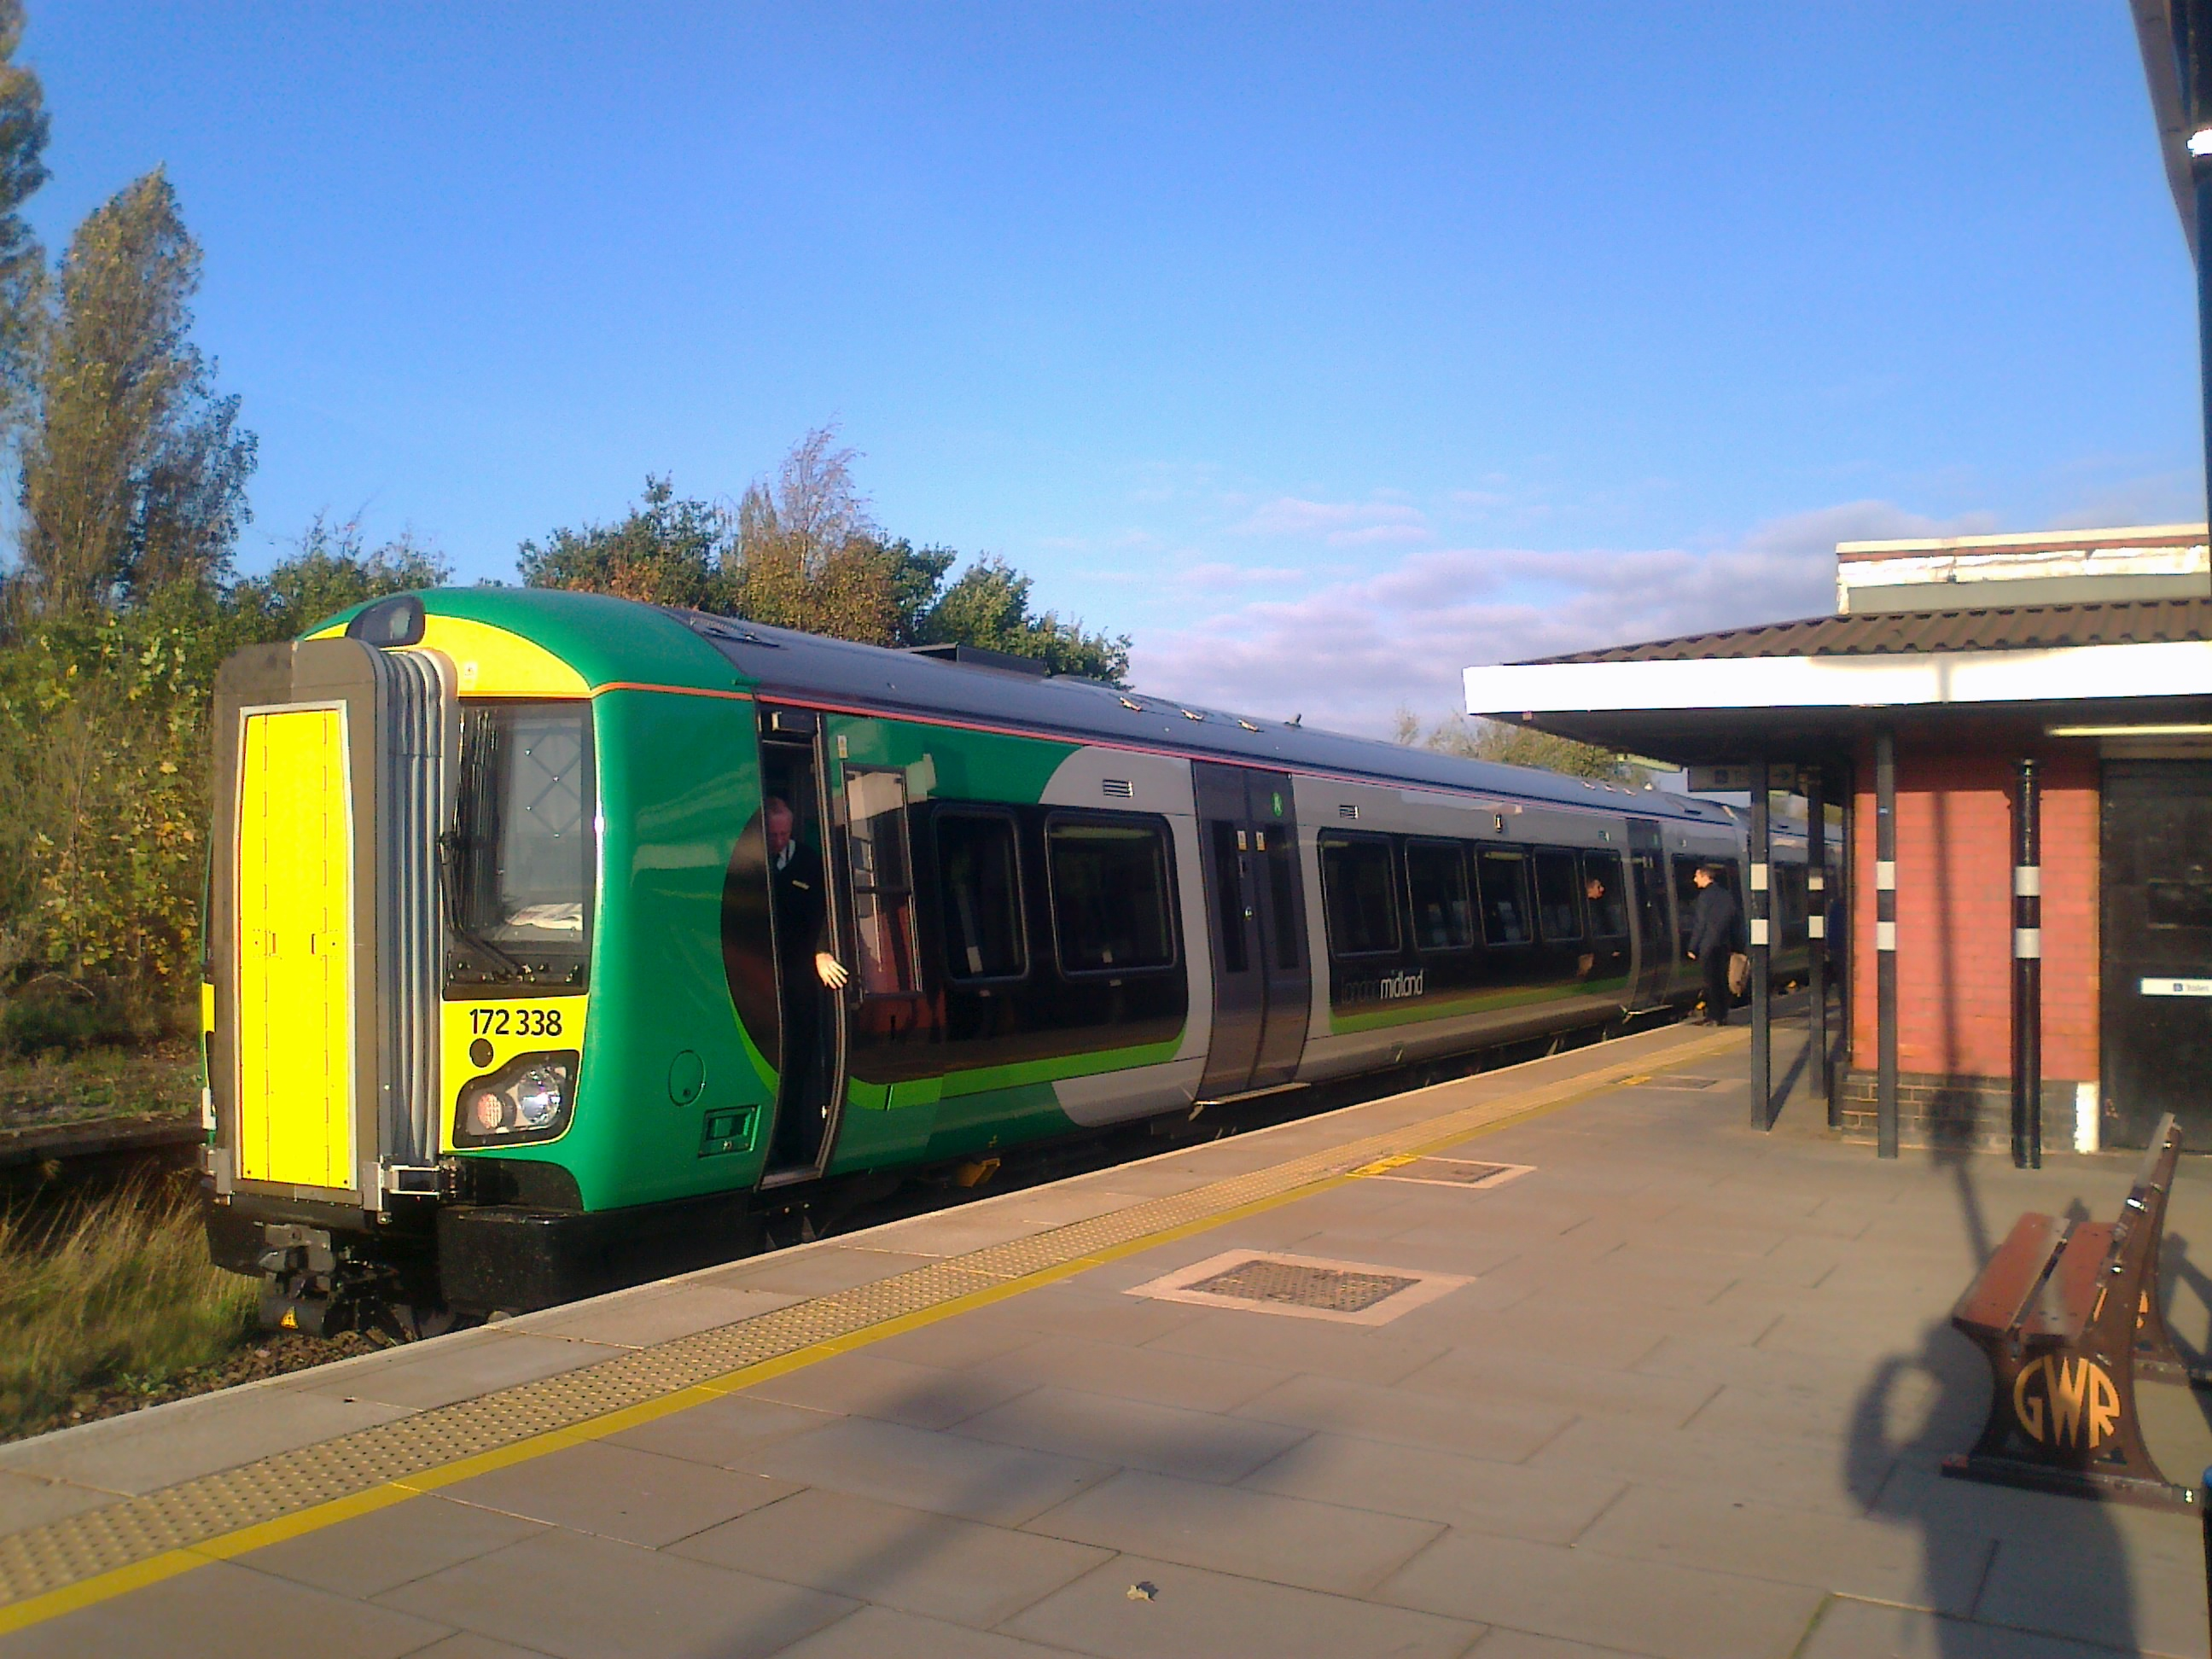 London Midland Train 172338 Solihull Station Flickr